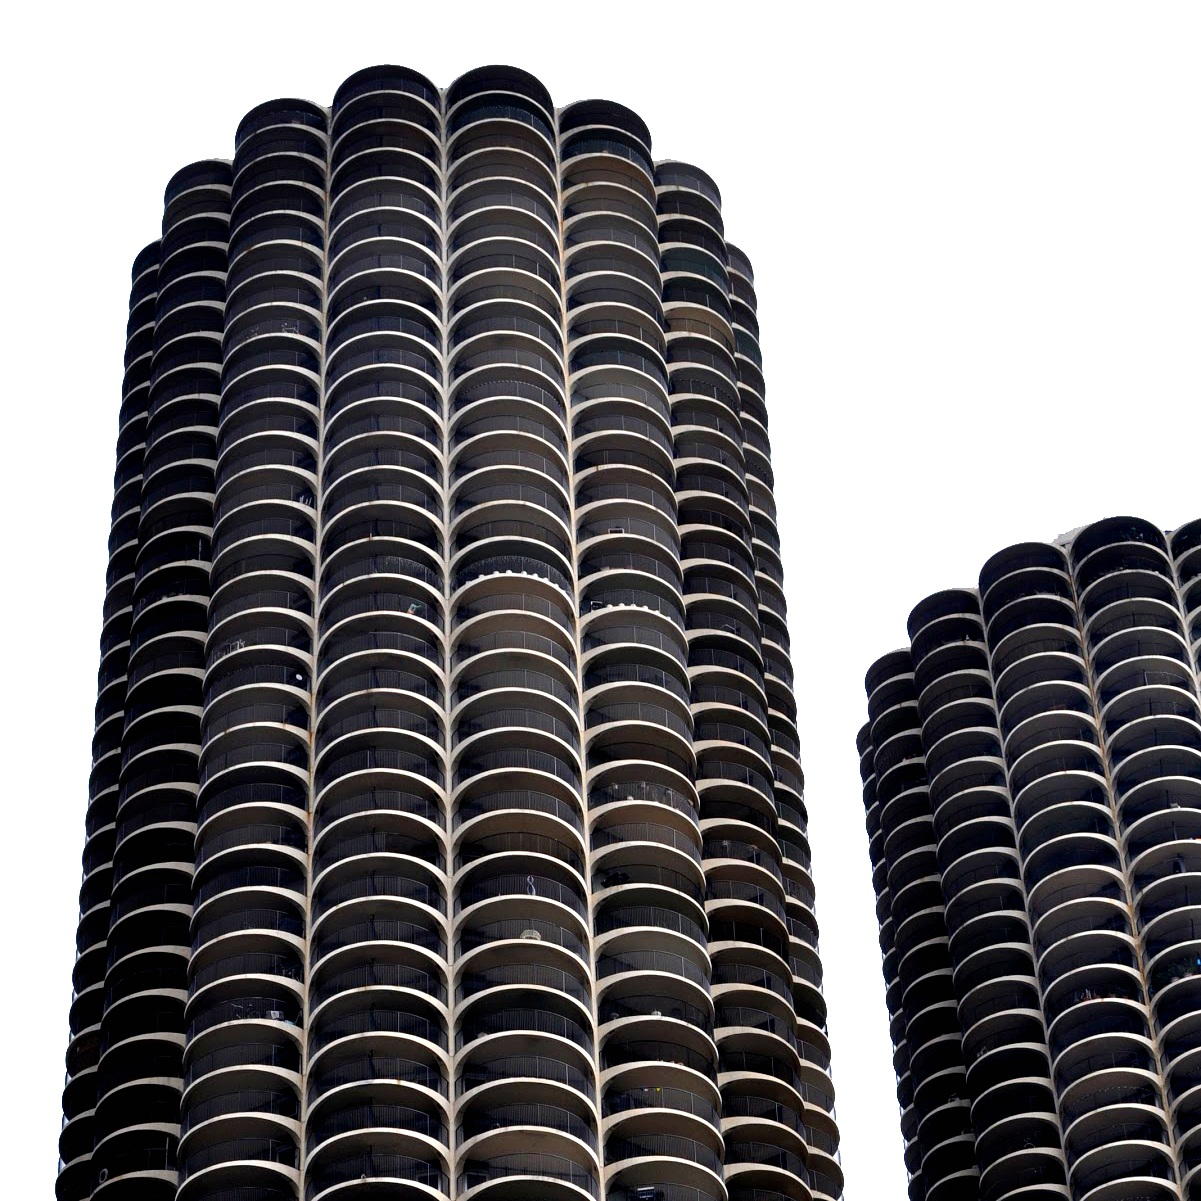 The iconic Marina City towers in Chicago. Designed by Bertrand Goldberg